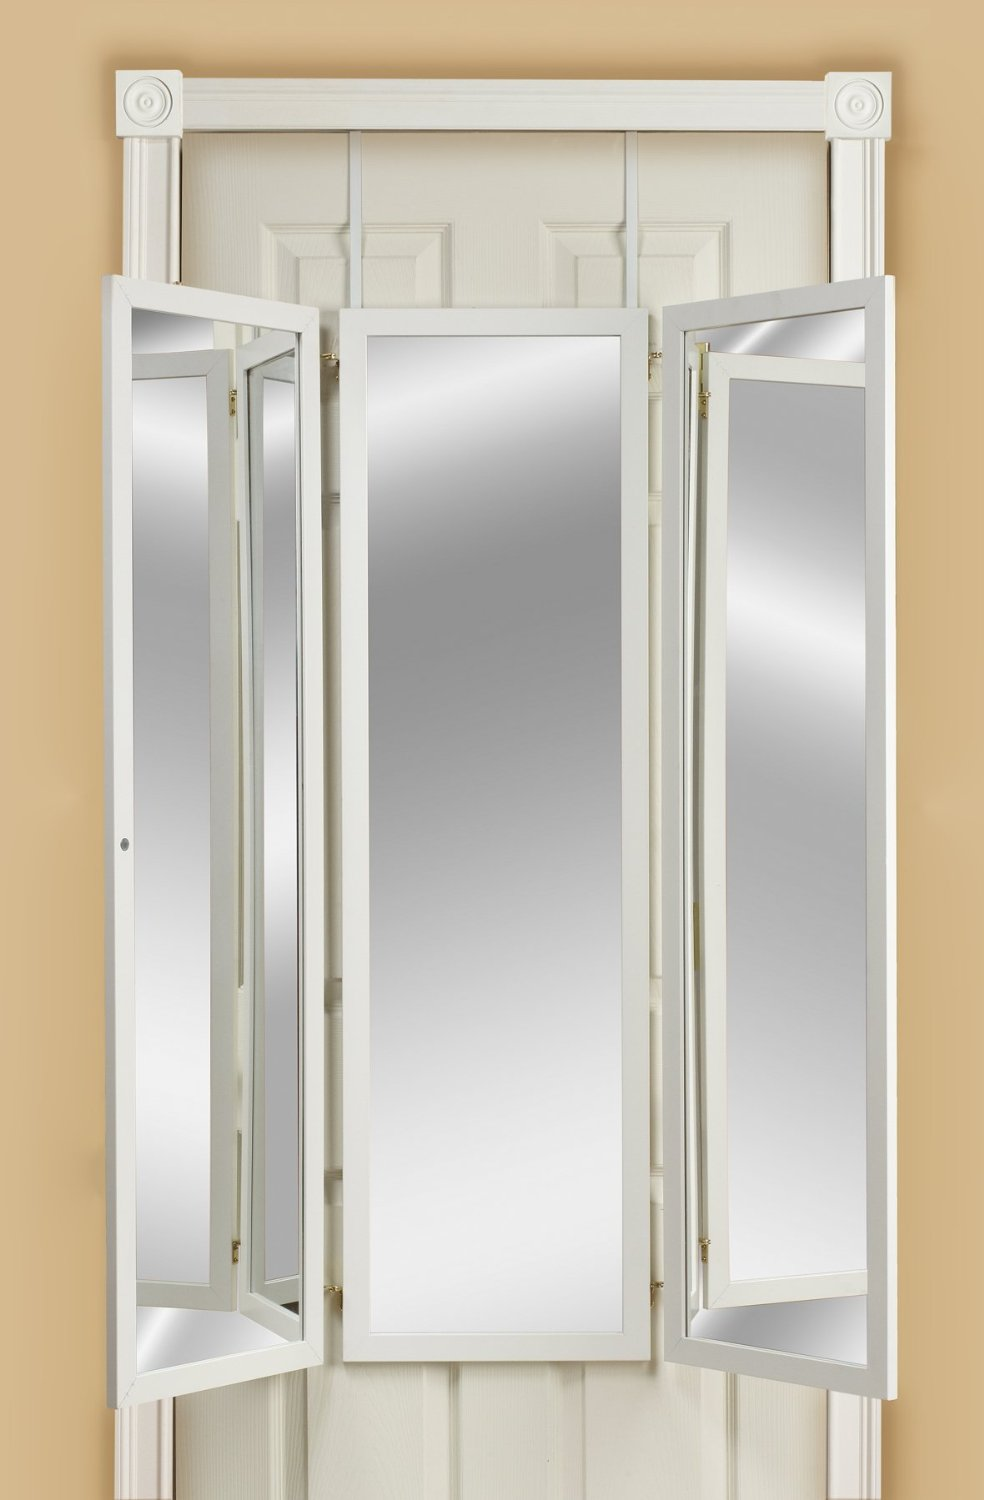 Le Meilleur Three Way Mirror To Save Your Day Decor On The Line Ce Mois Ci